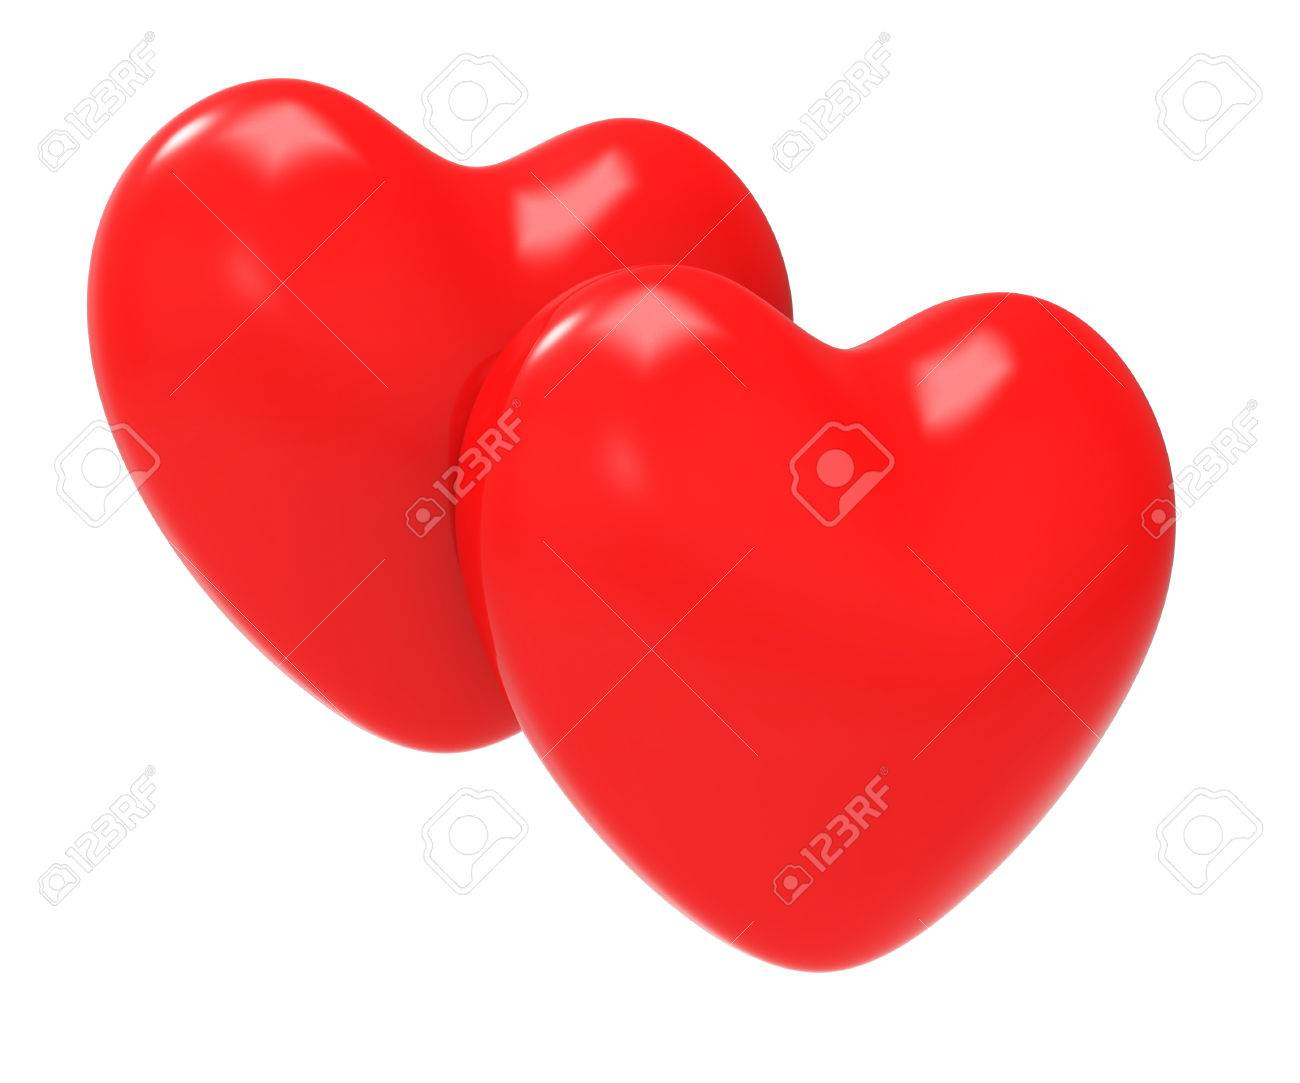 hearts love meaning valentines day and fondness stock photo, picture